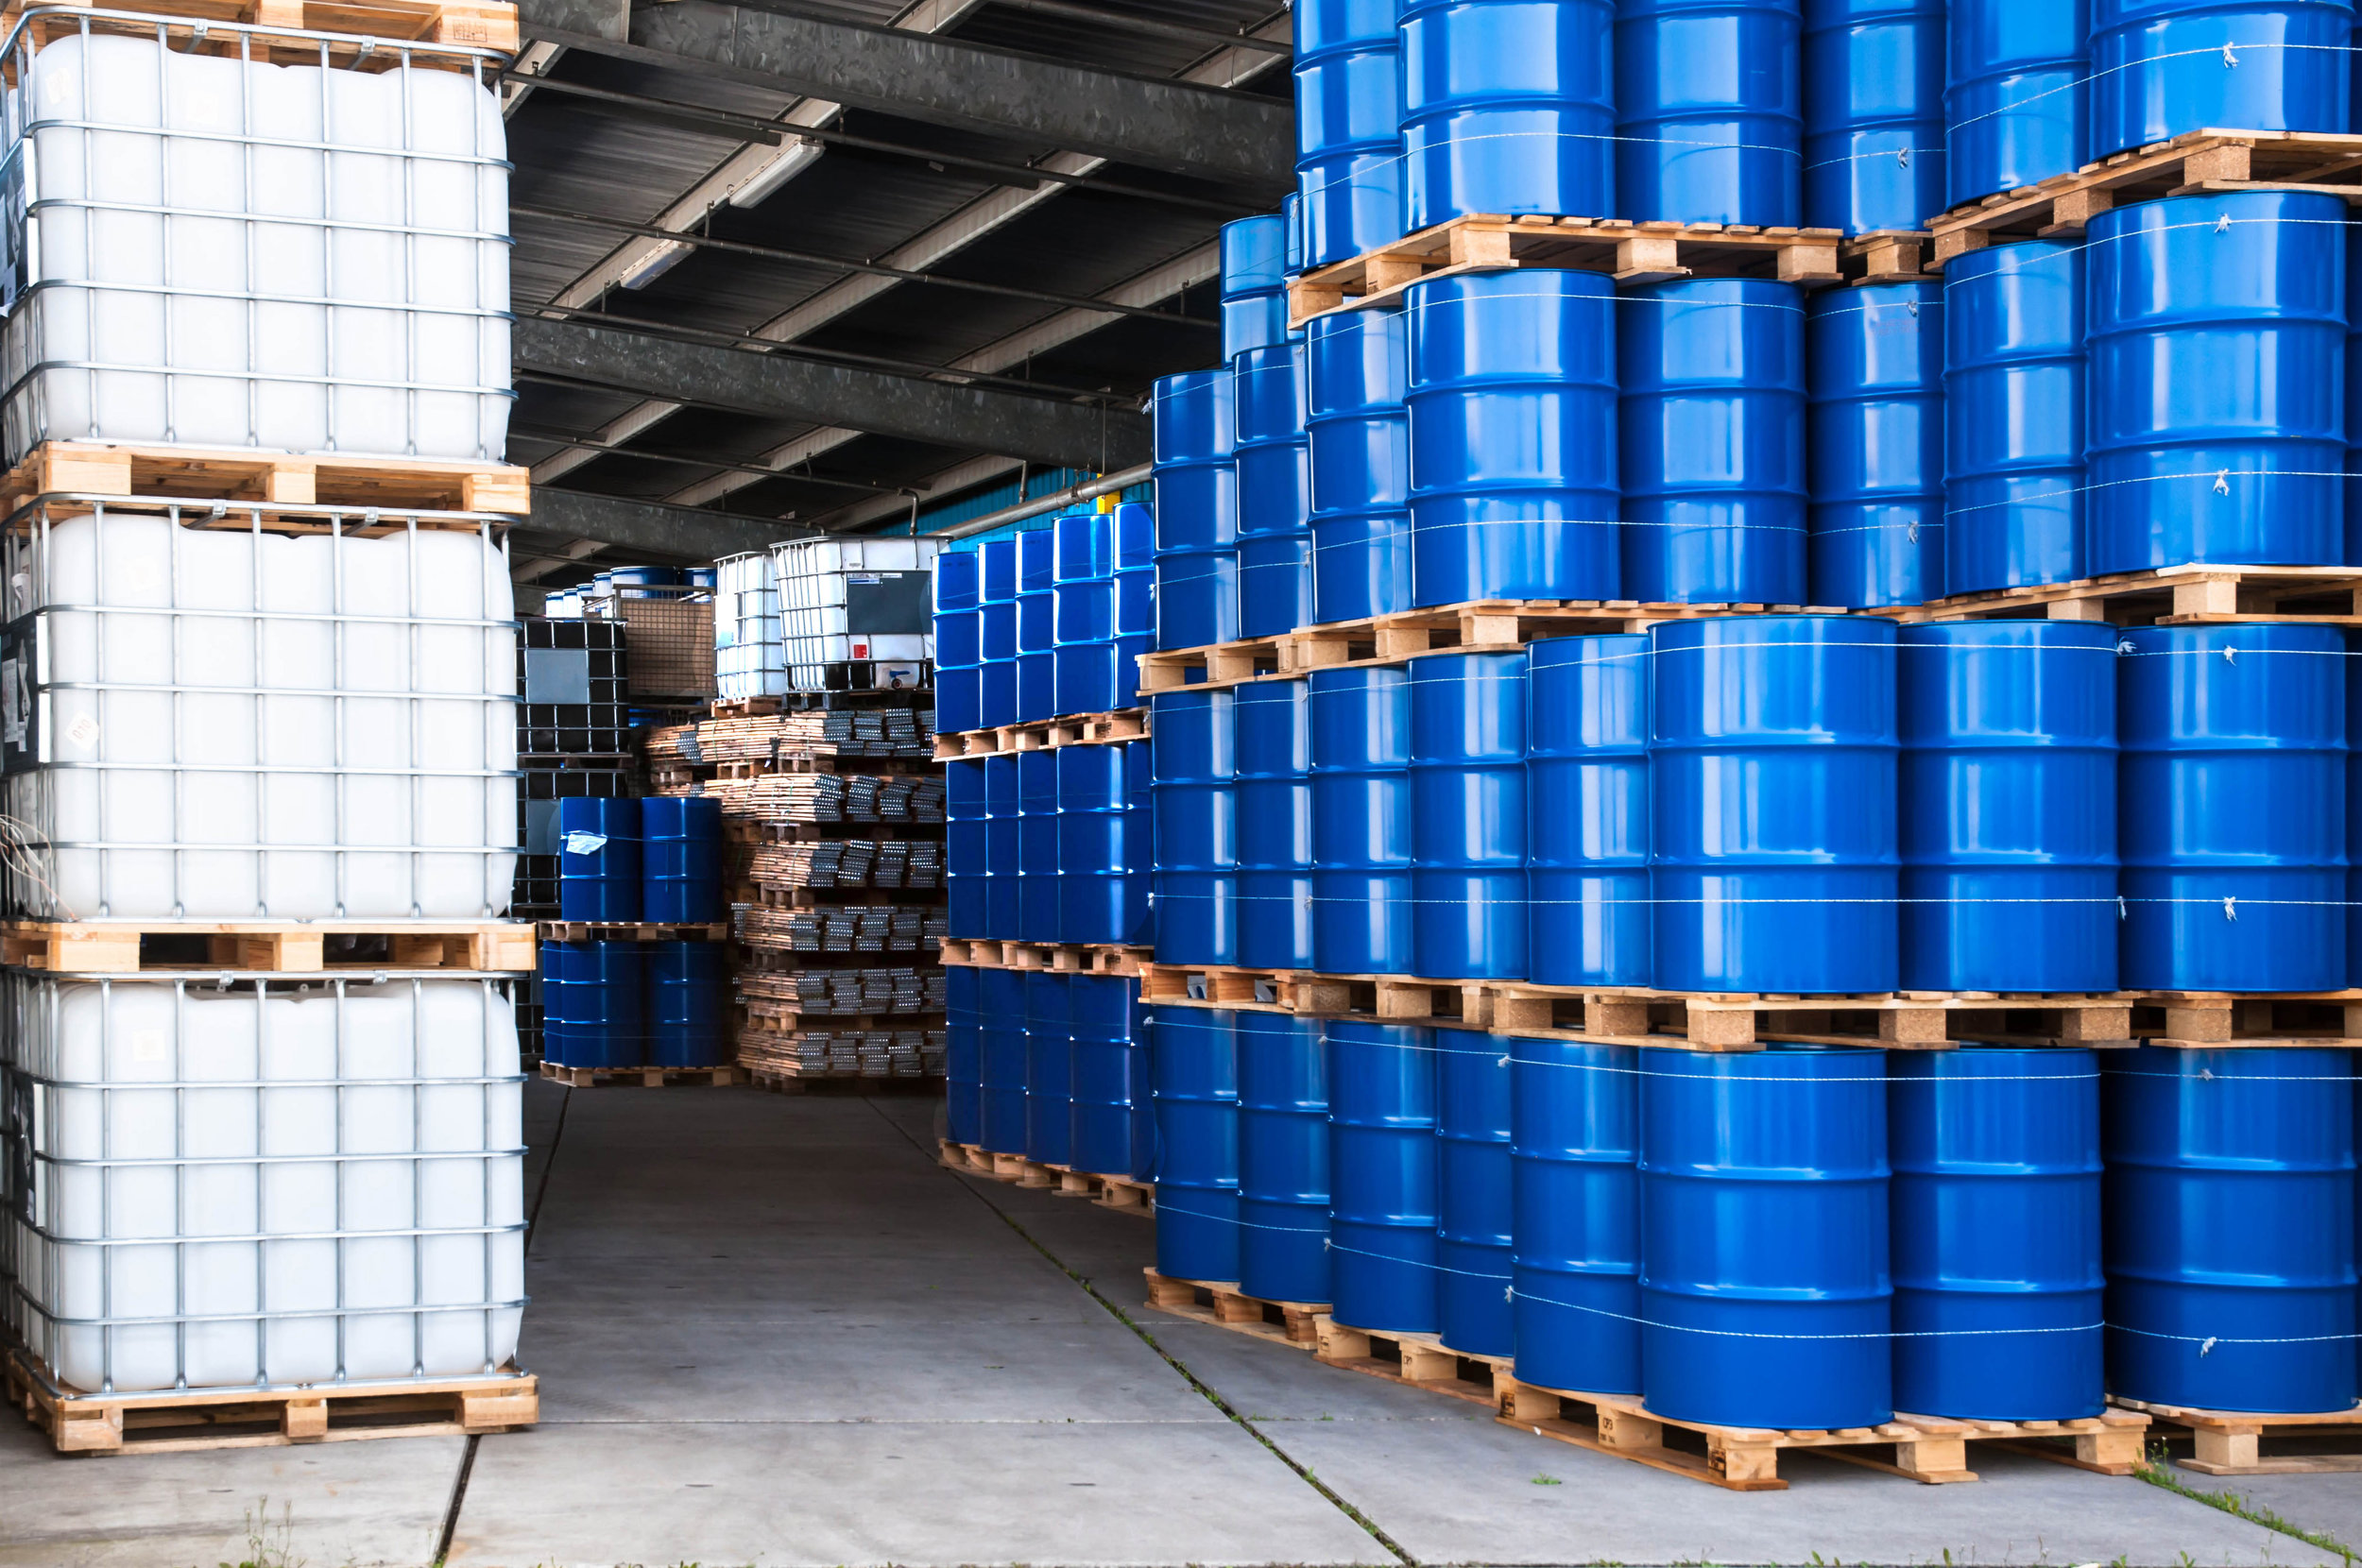 Citric Acid 50% - The Meadows Group provides 50% Citric Acid Solution to US customers for industrial application.Full loads or smaller tote orders can be filled from Houston inventory, or shipped directly from our JV plant.Contact your TMG representative to discuss your needs.